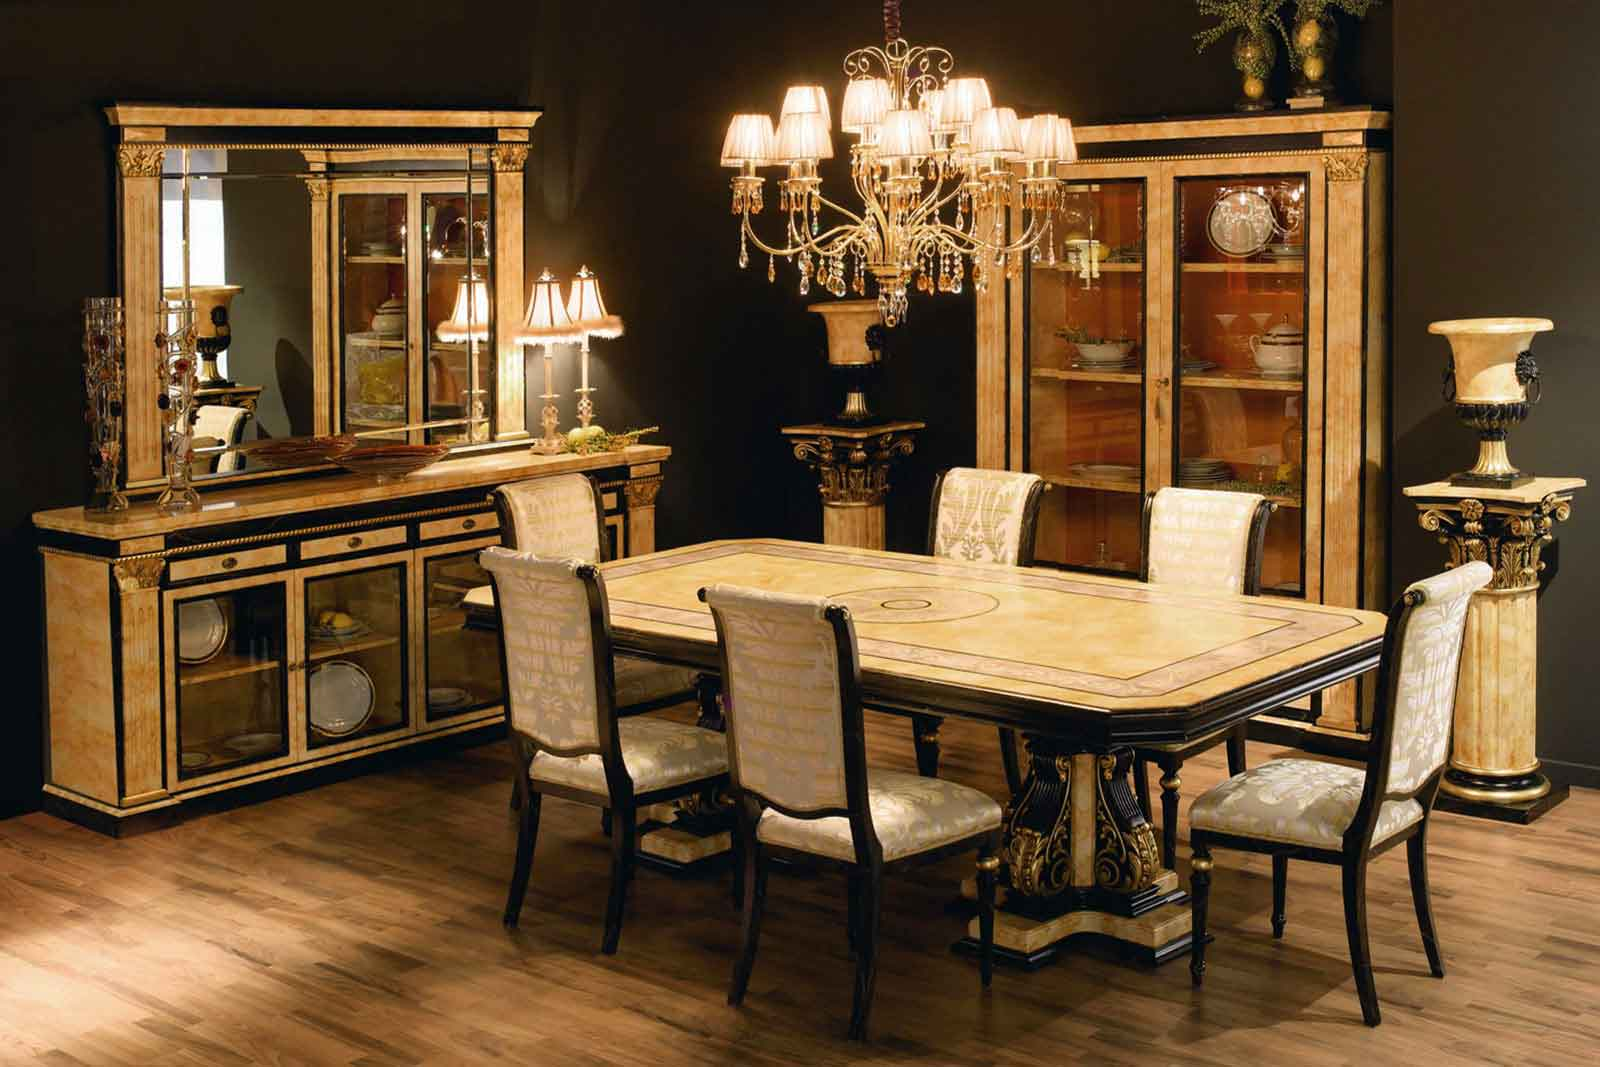 luxury furniture or2145 - sideboard mod.24143/14 of 232x50x101 finished marbled, black and  gold VEWWLBU